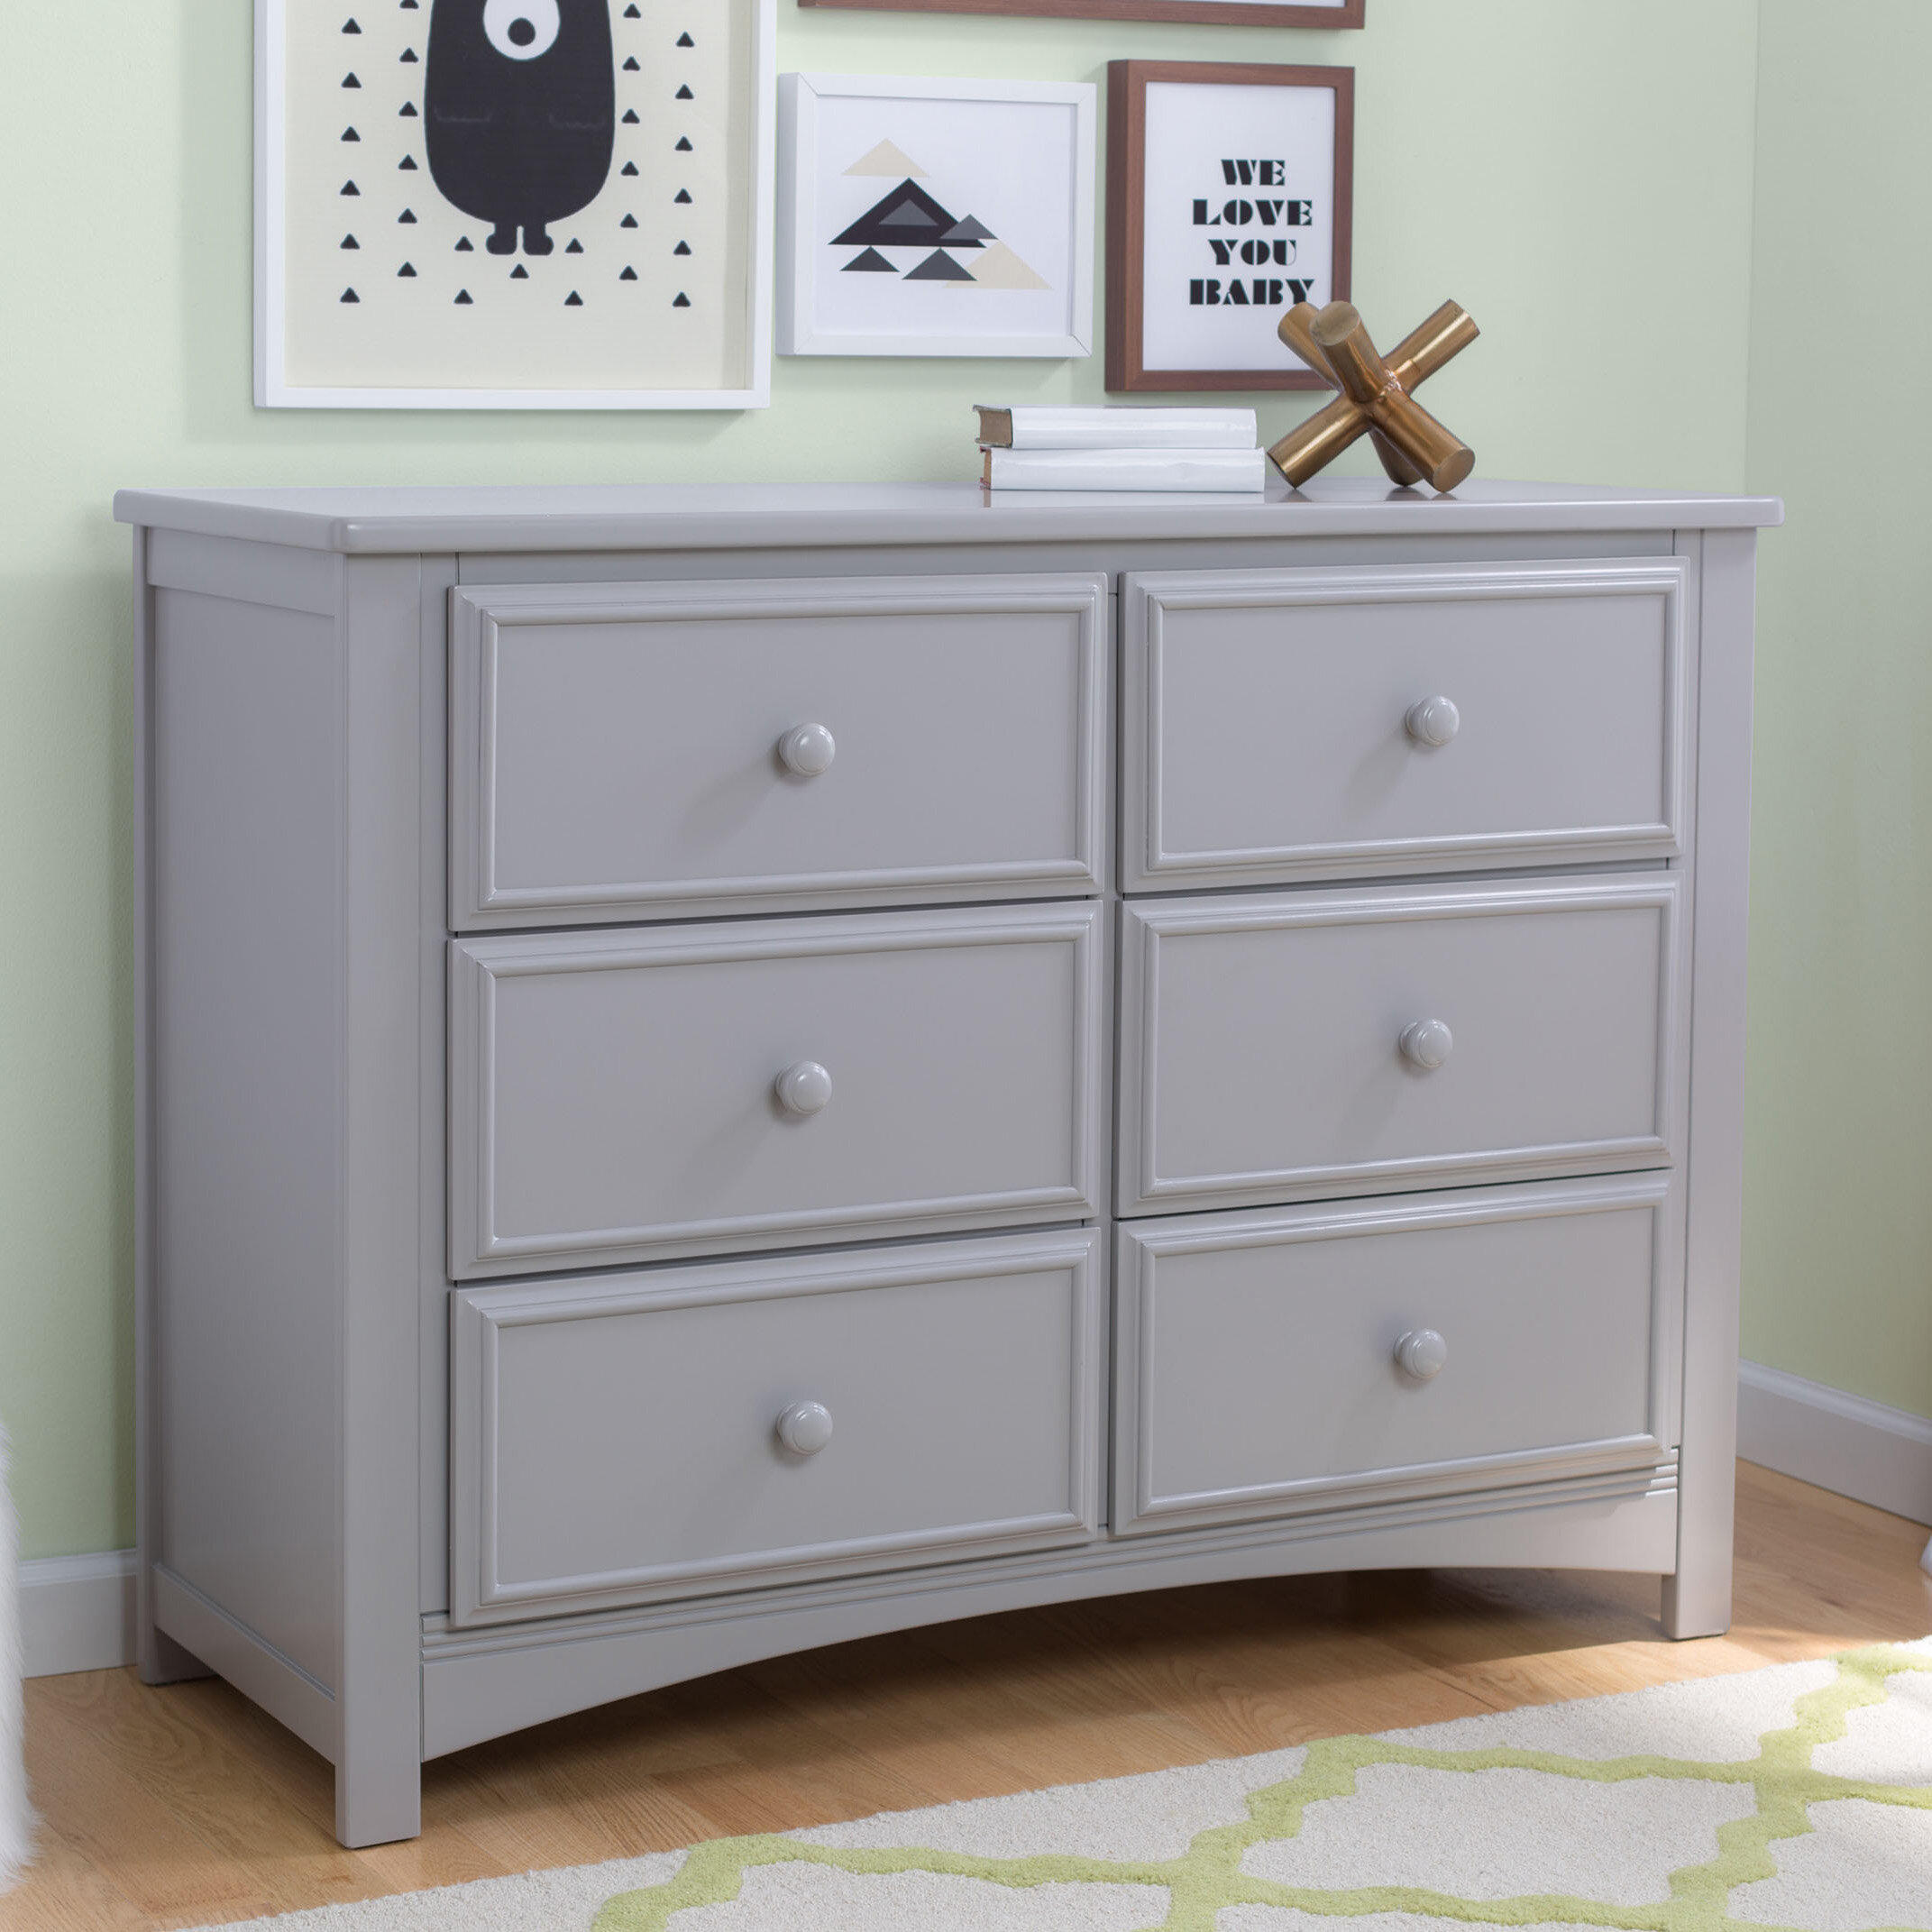 kalani grey chestnut drawer double lisacintosh wide davinci dresser